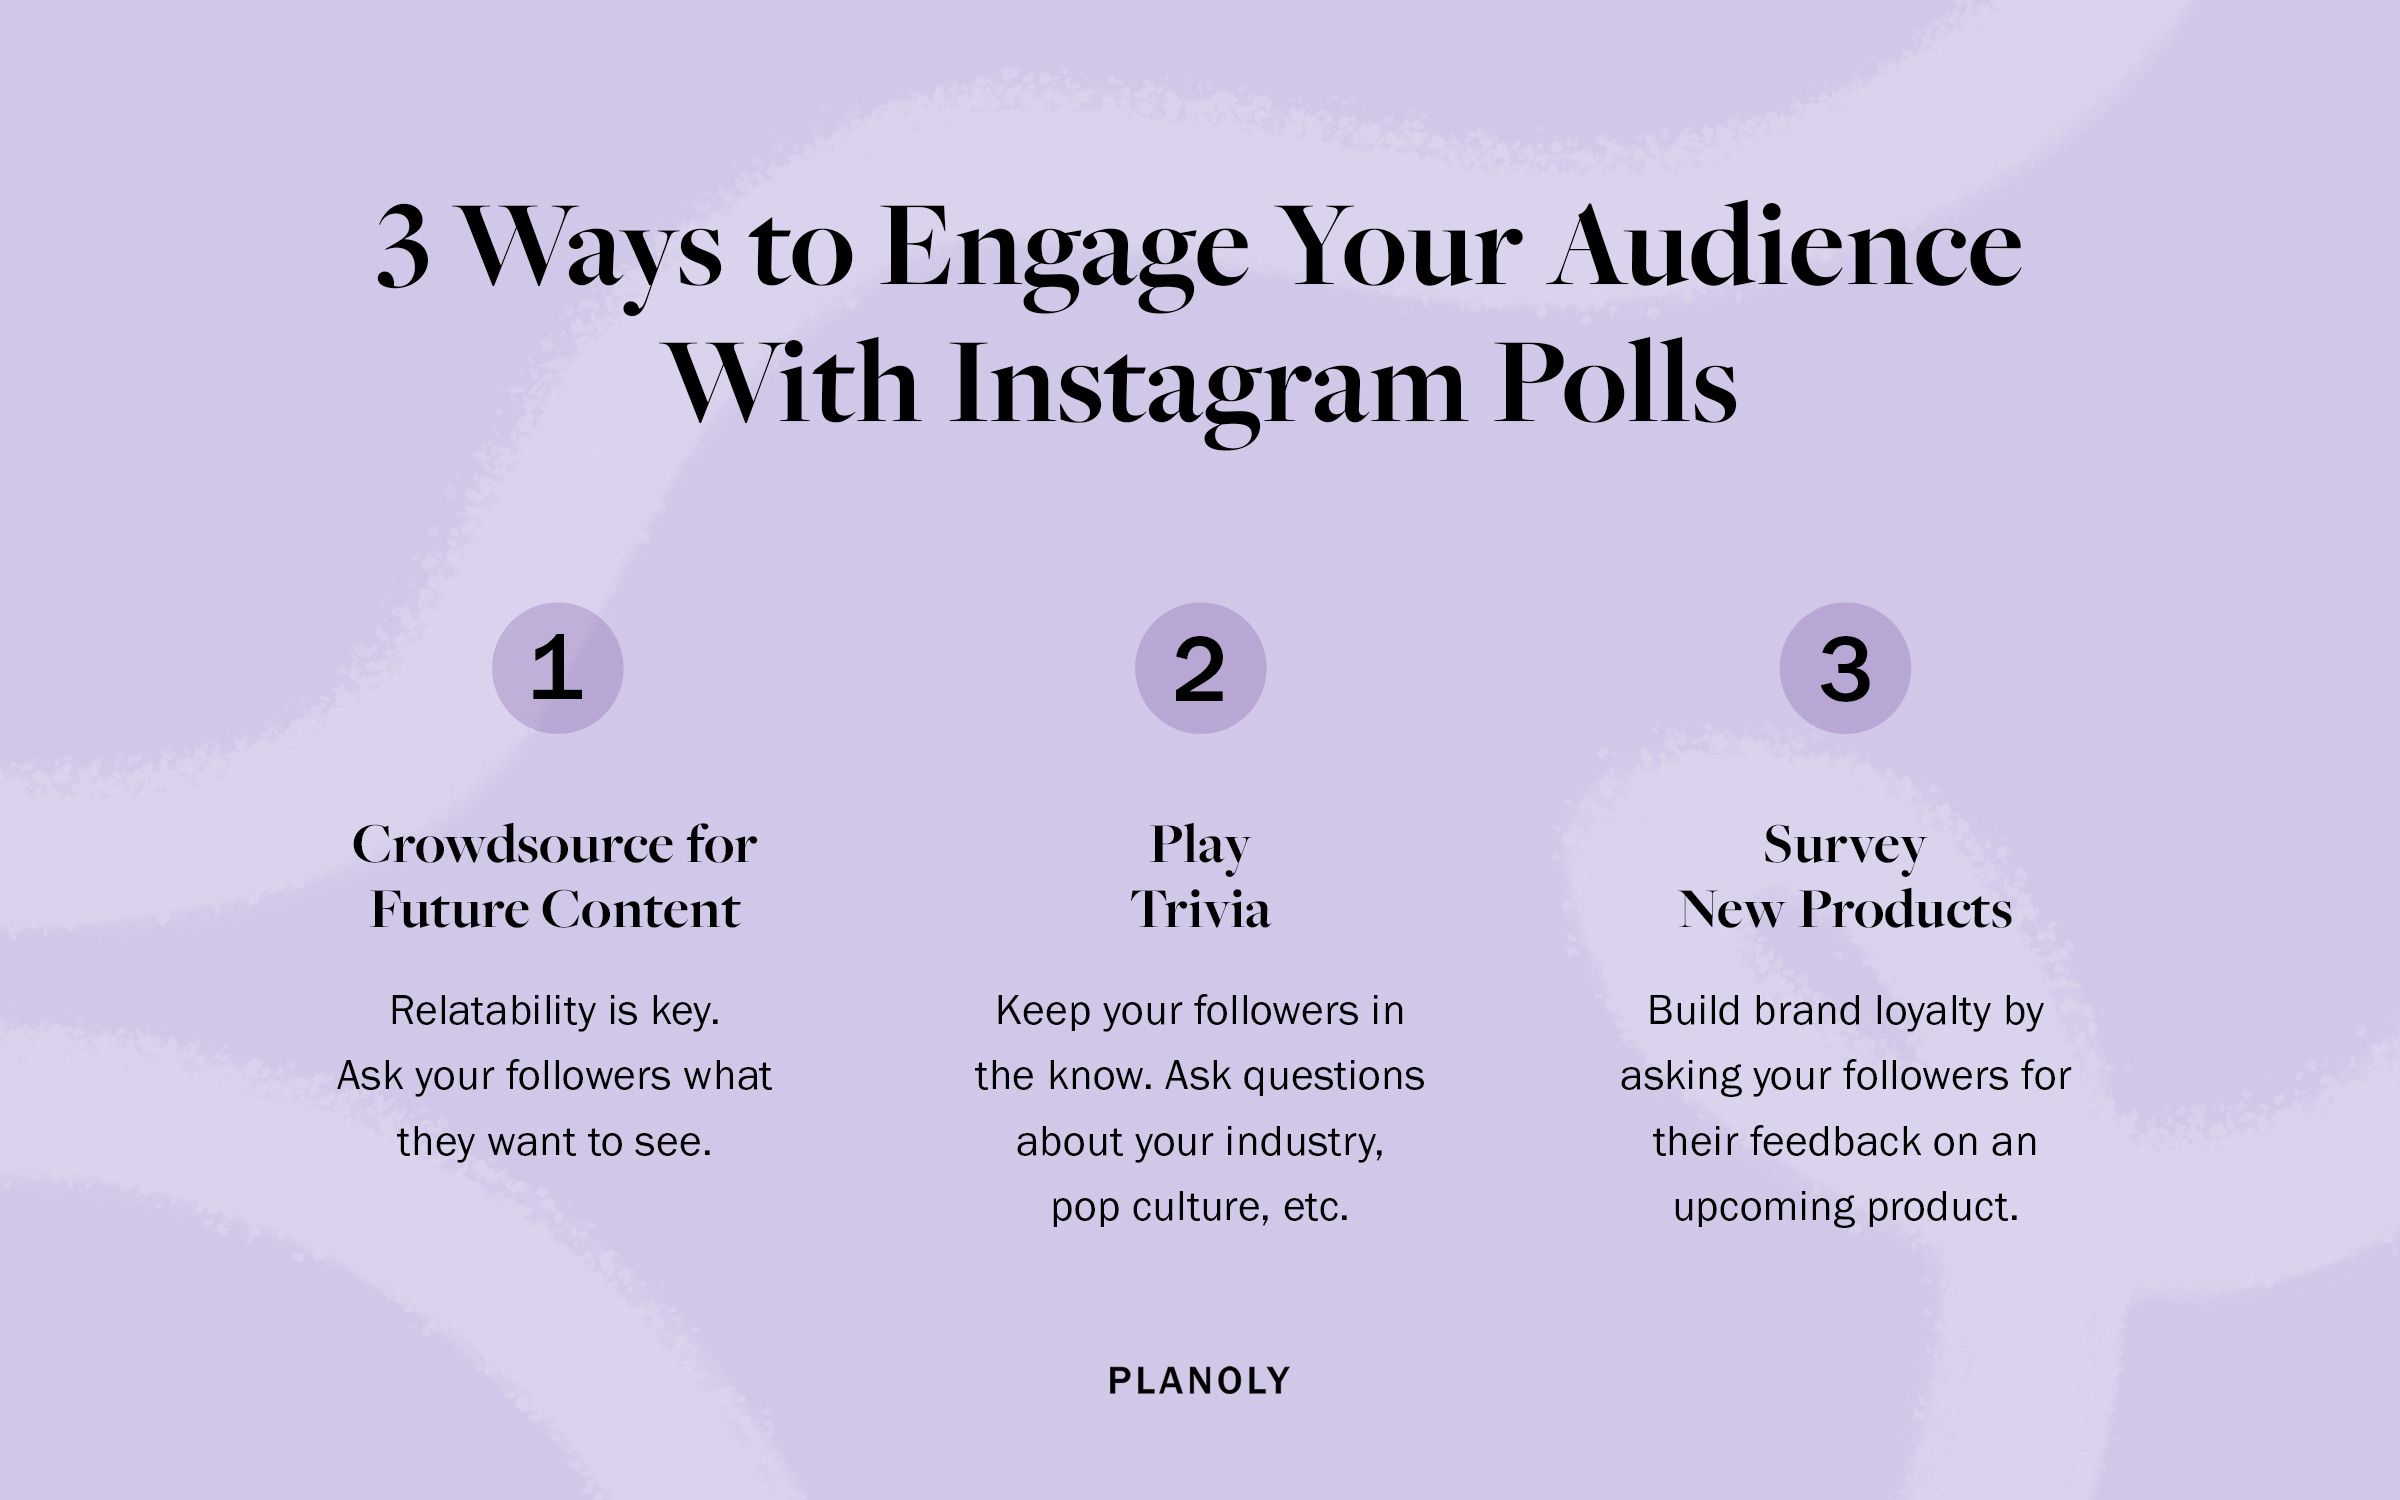 PLANOLY-Blog-Post-How-to-Use-IG-Polls-to-Grow-Your-Engagement-Image-3